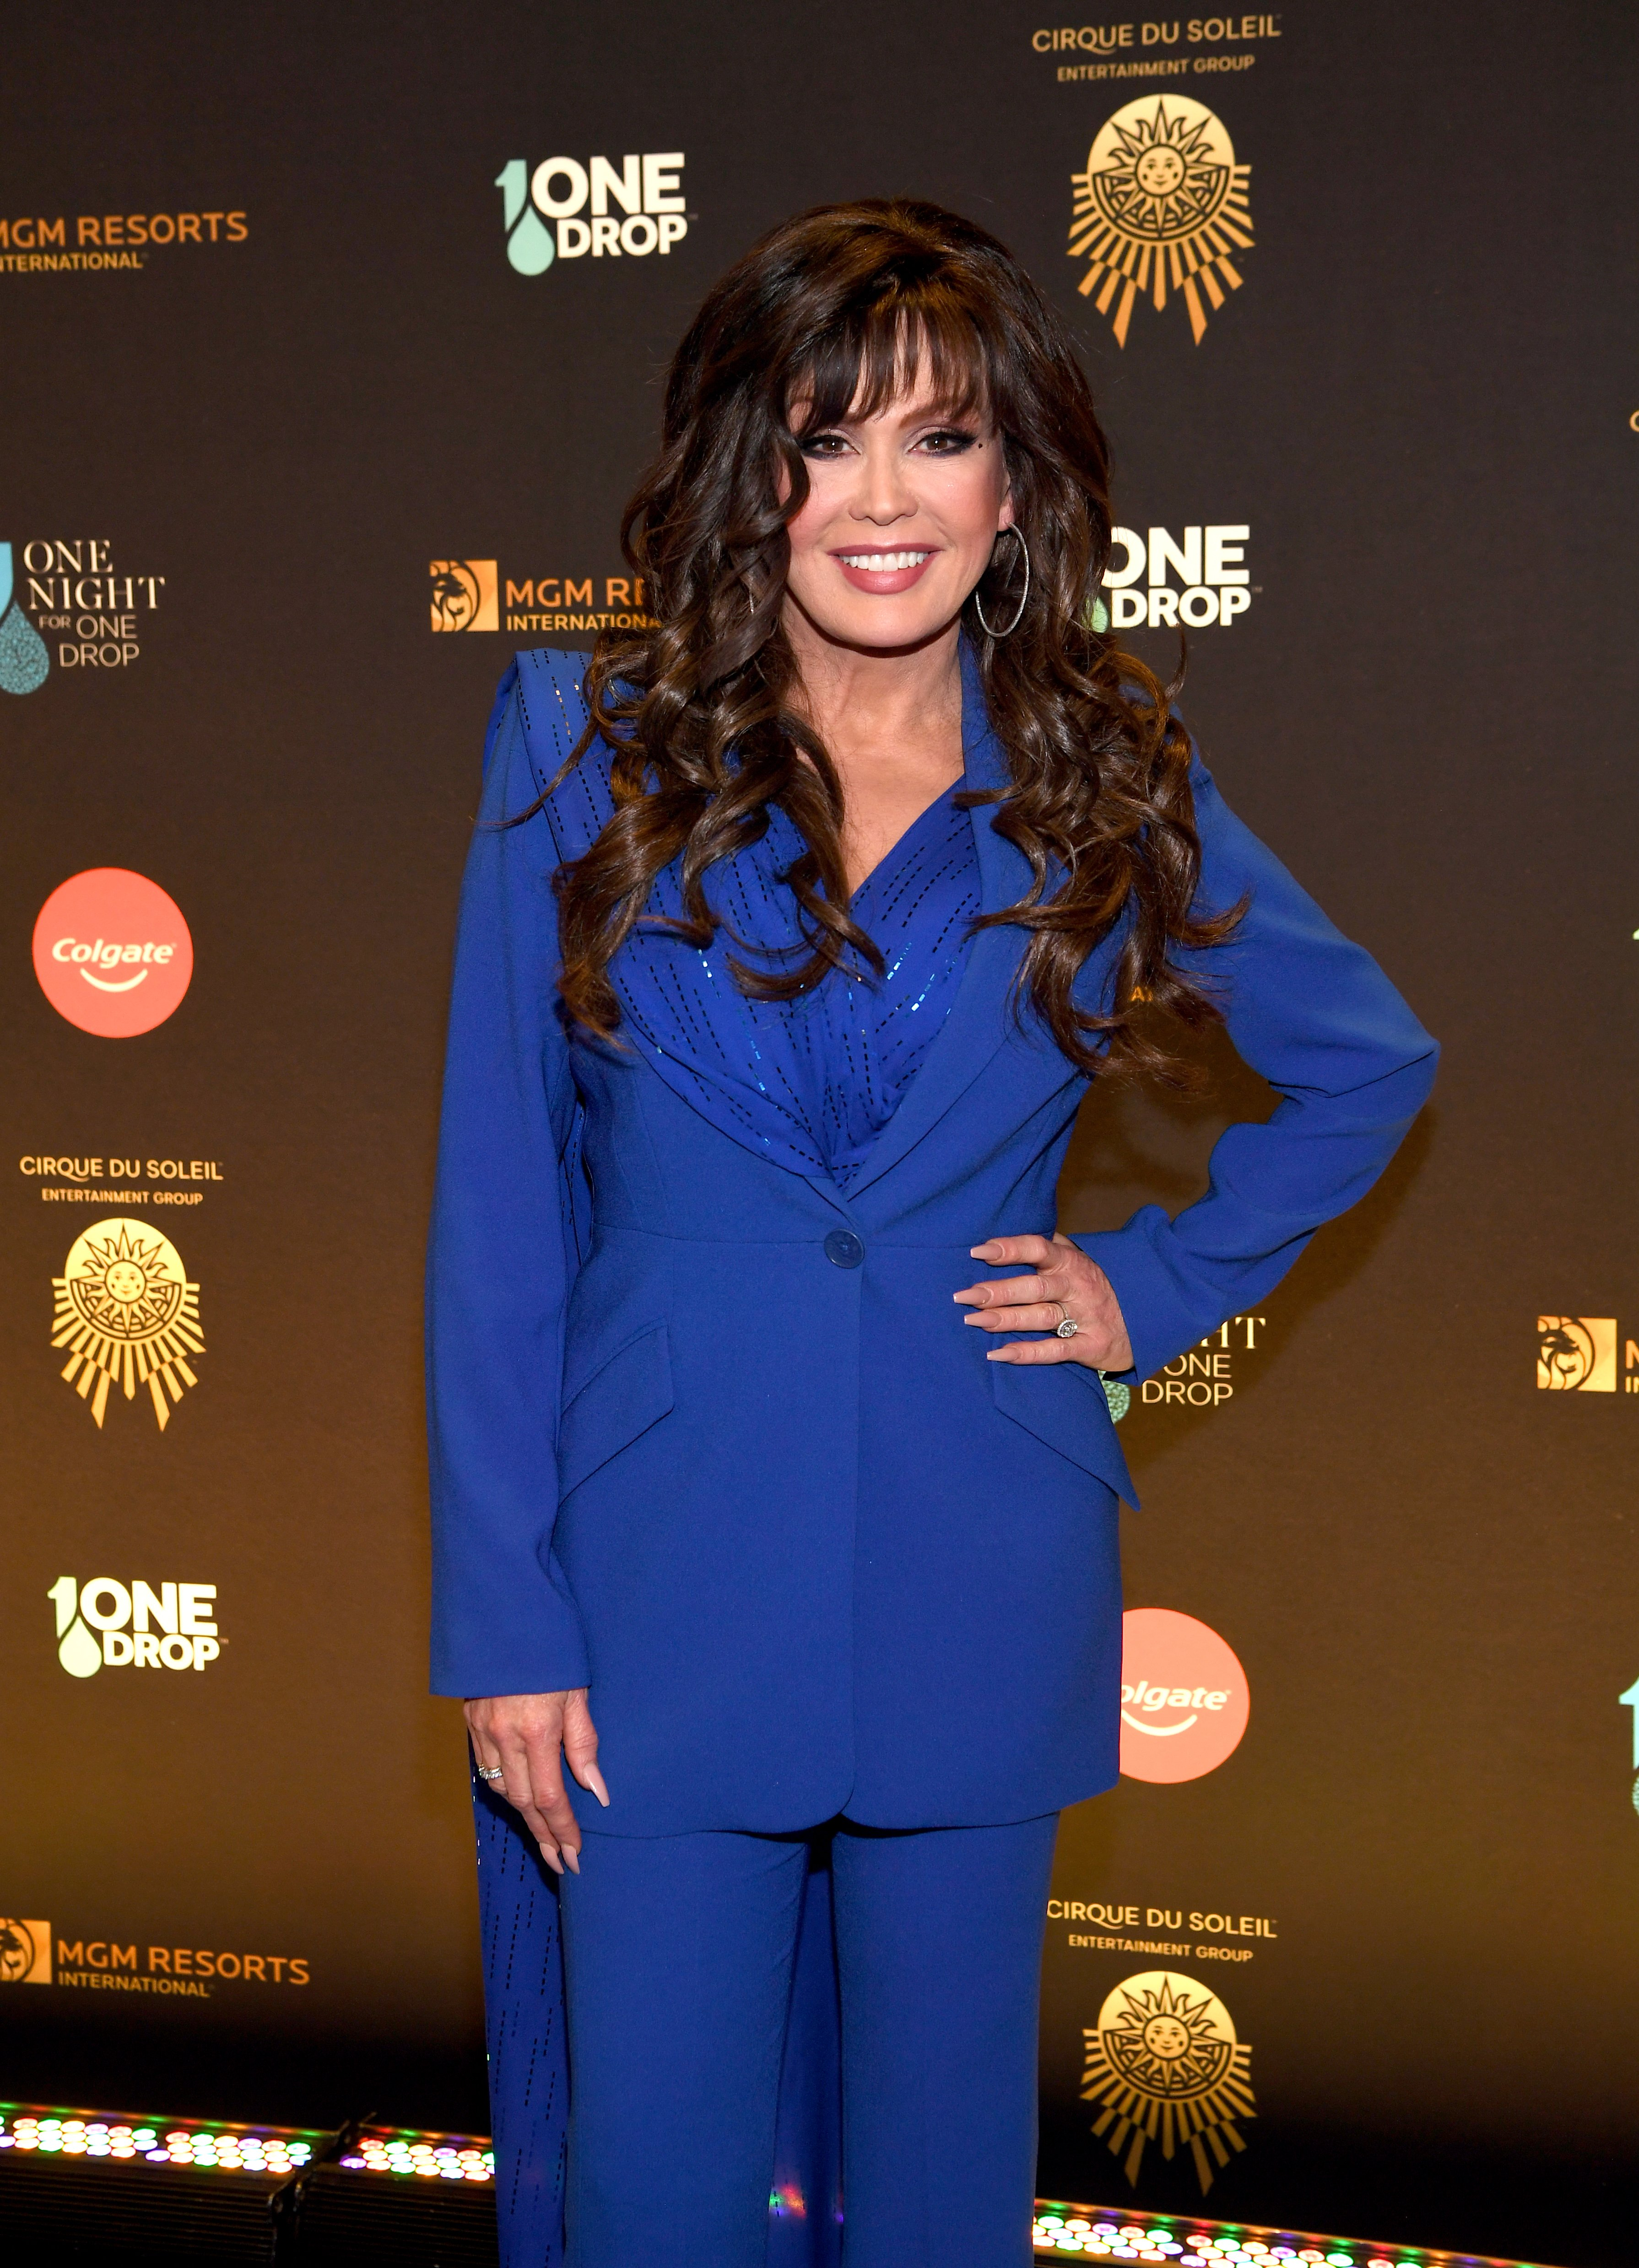 Marie Osmond attends One Night One Drop in Las Vegas, Nevada on March 8, 2019 | Photo: Getty Images